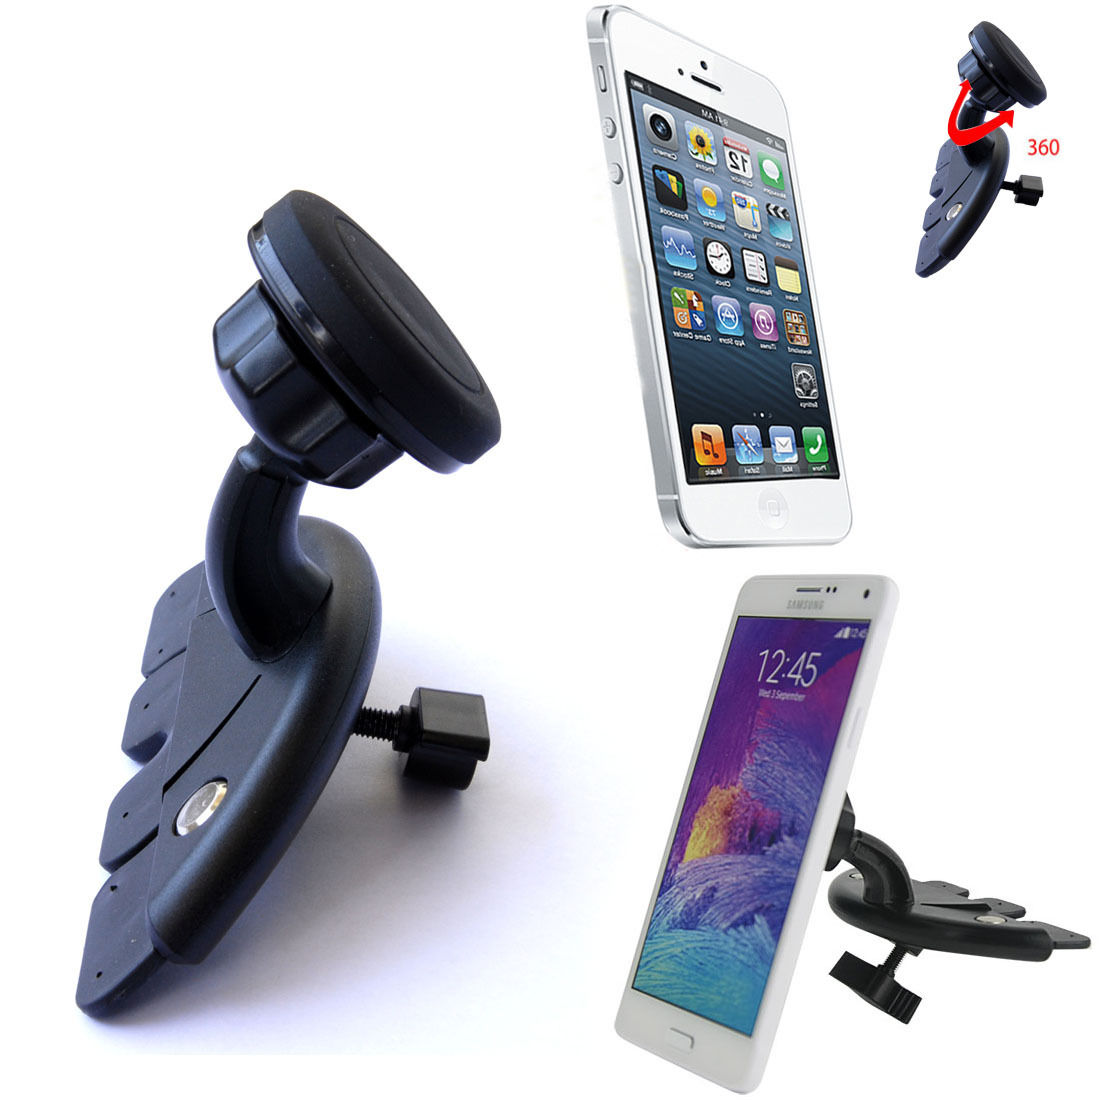 Universal 360 degree Car CD Slot Dock Magnetic Mount Holder Stands Bracket phone Phone Holder for the Car(China (Mainland))